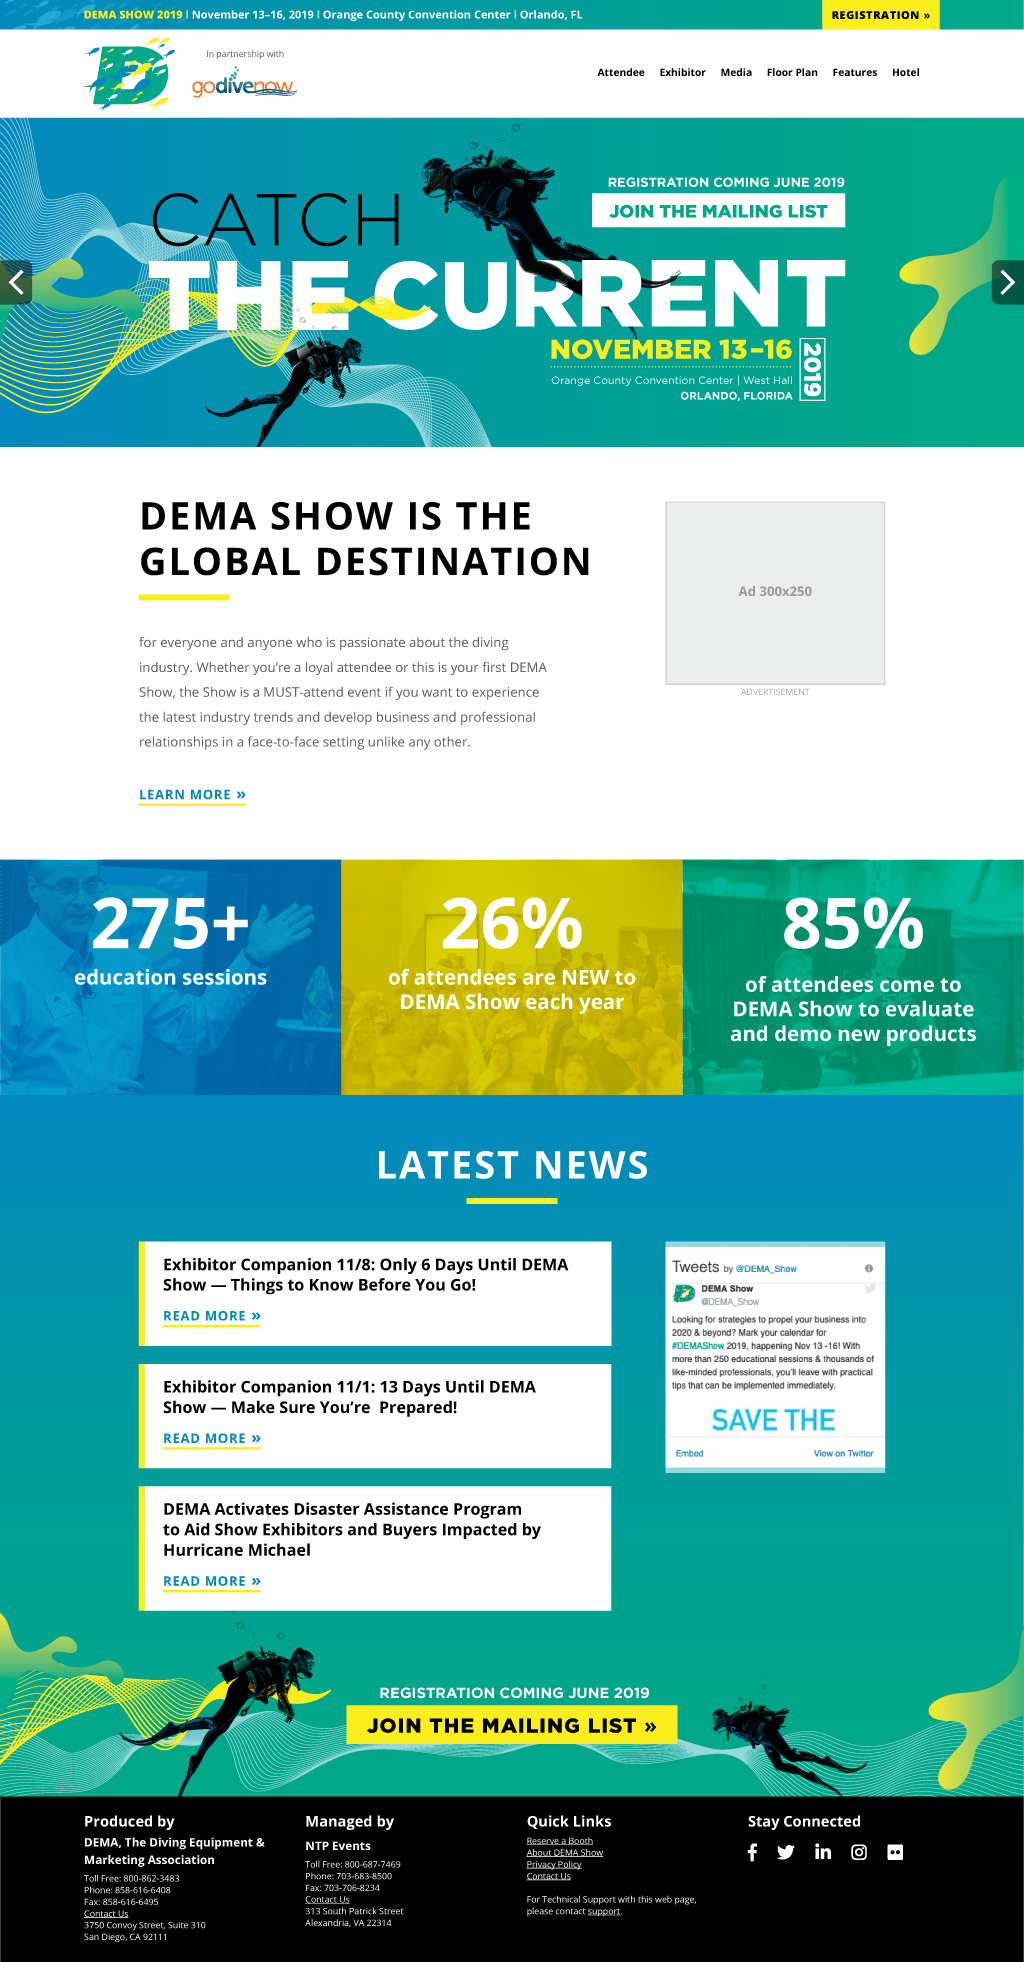 The final, high-fidelity wireframe and mock-up for the DEMA Show 2019 trade show website.